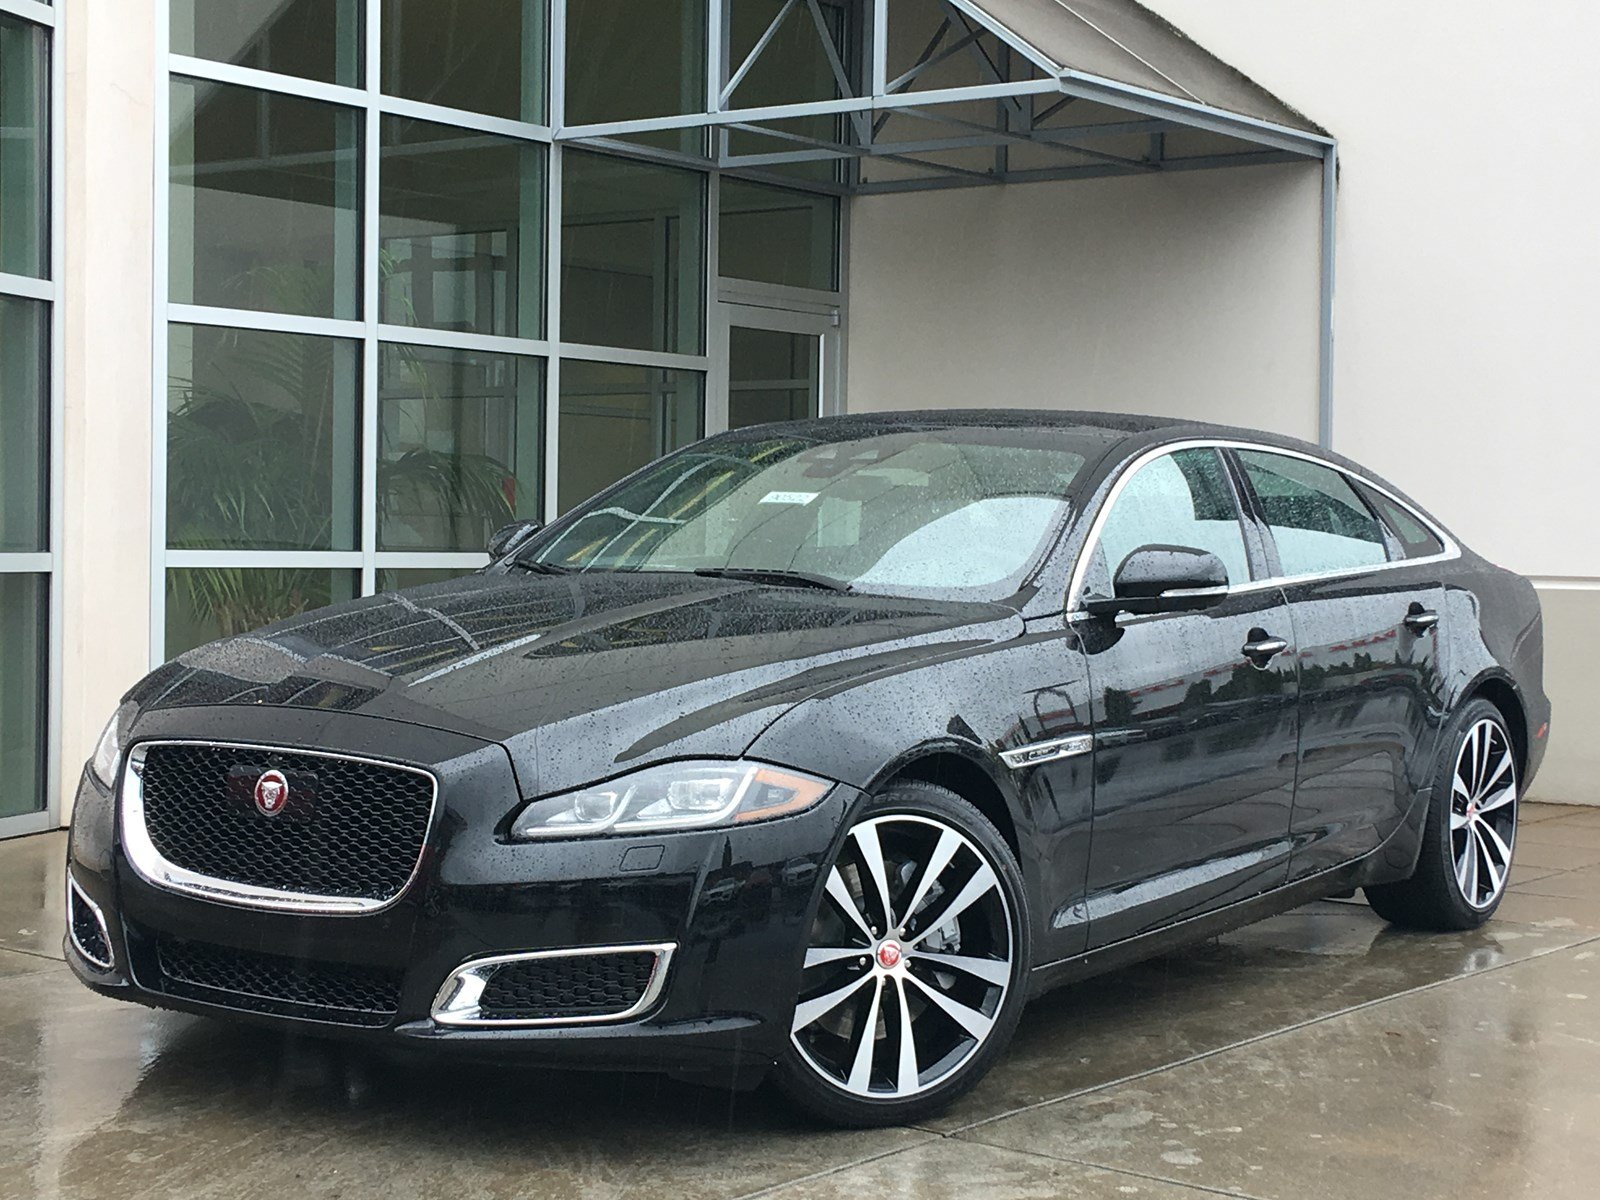 Approved Jaguar Xj >> New 2019 Jaguar XJ XJL50 V6 4dr Car in Lynnwood #90522 | Jaguar Seattle